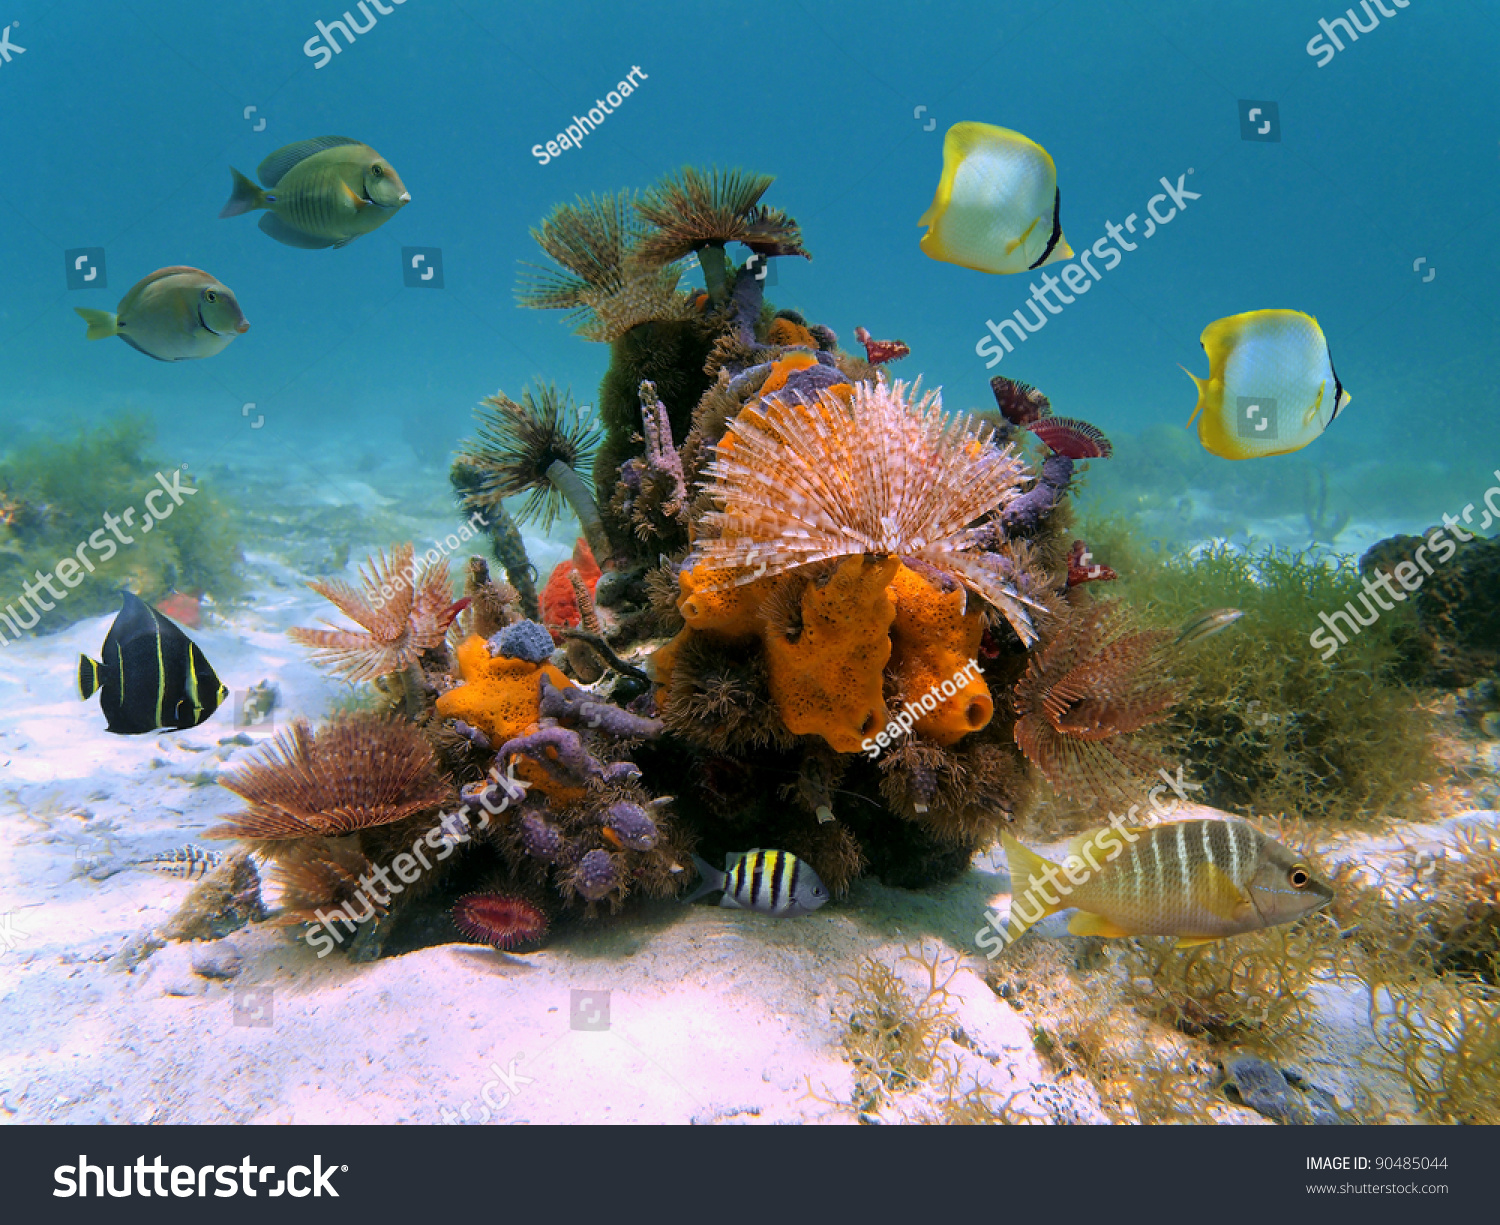 Underwater Colorful Marine Life With Marine Worms Sponges